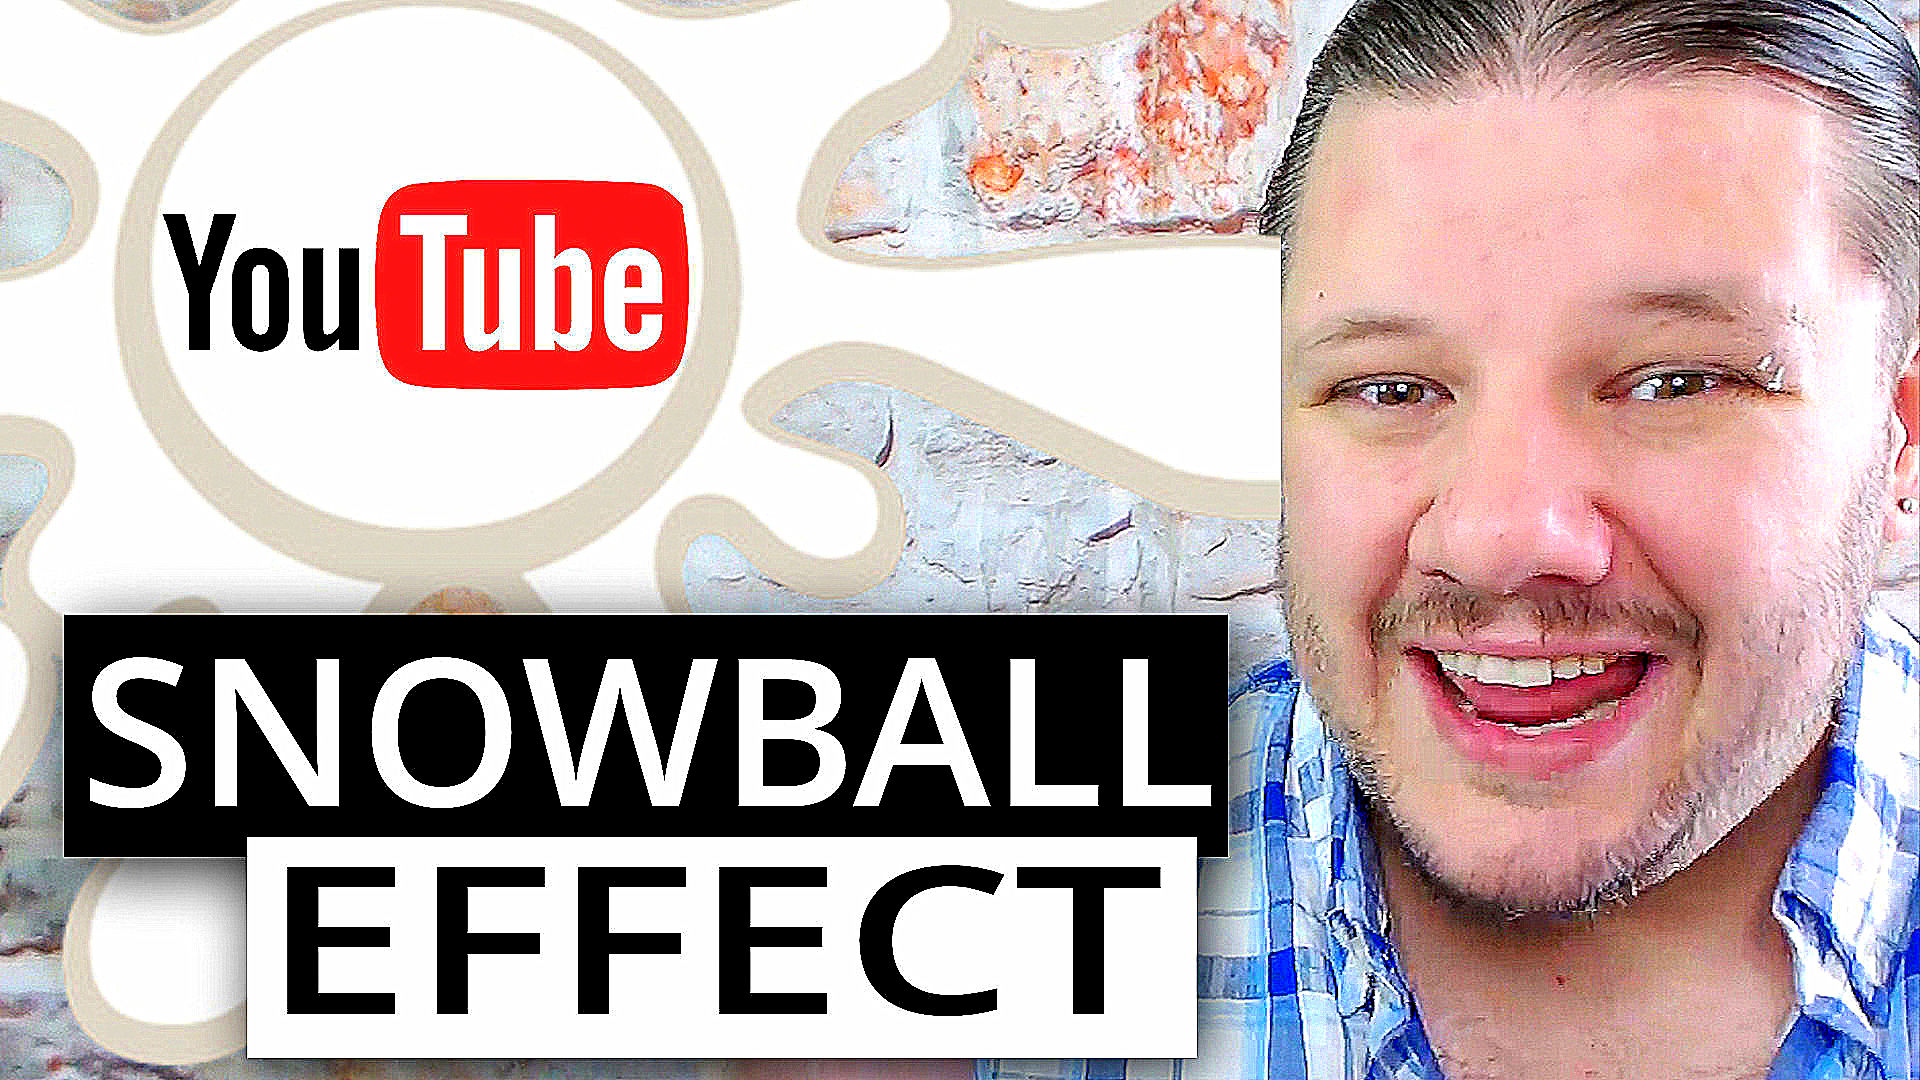 alan spicer,alanspicer,youtube tips,youtube tricks,asyt,snowball,youtube snowball effect,snowball effect,the snowball effect,the youtube snowball effect,the youtube snowball,youtube snowball,snowballing,snowballing effect,the snowballing effect,youtube snowballing,youtube snowballing effect,snowball growth,snowball growth strategy,youtube growth stategy,snowball effect youtube,snowball youtube effect,snowball youtube,spicer,snow ball effect,youtube